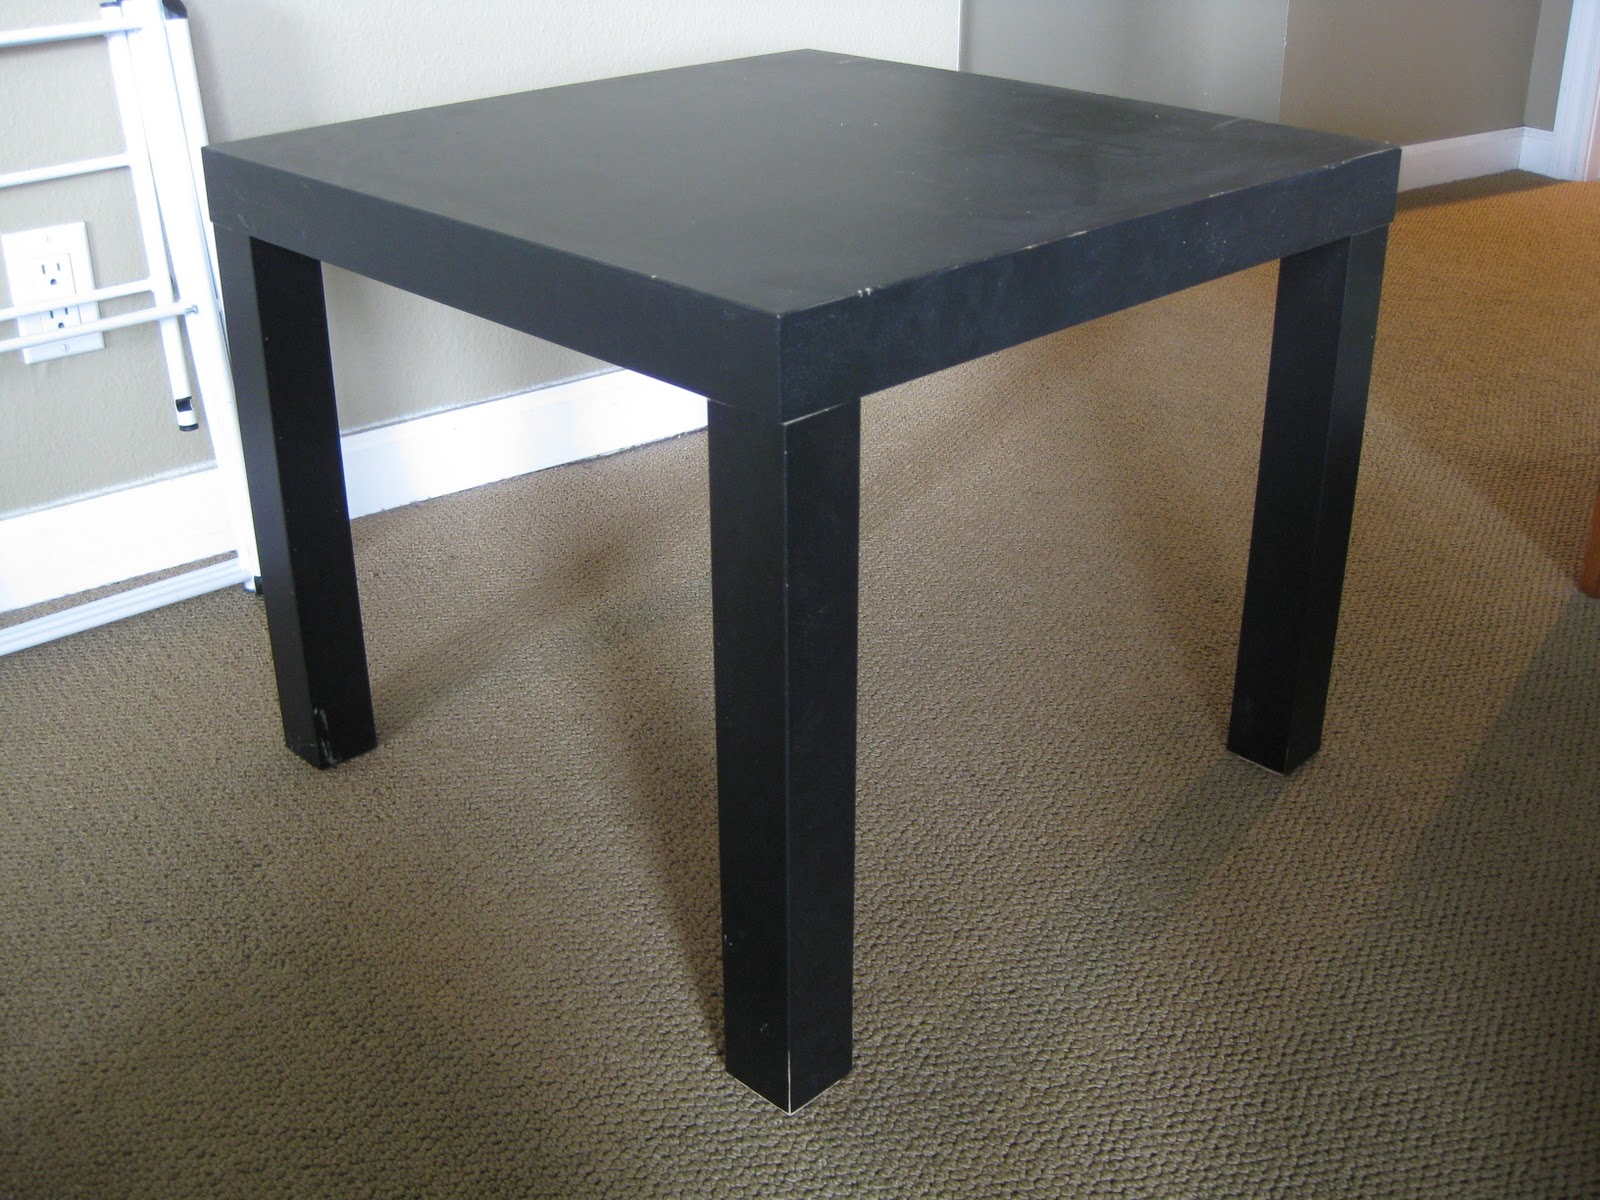 ikea small table design ideas corner and chairs accent tables square innovative beautiful inspiration end astonishing furniture gorgeous fabulous round low side baker glass buffet